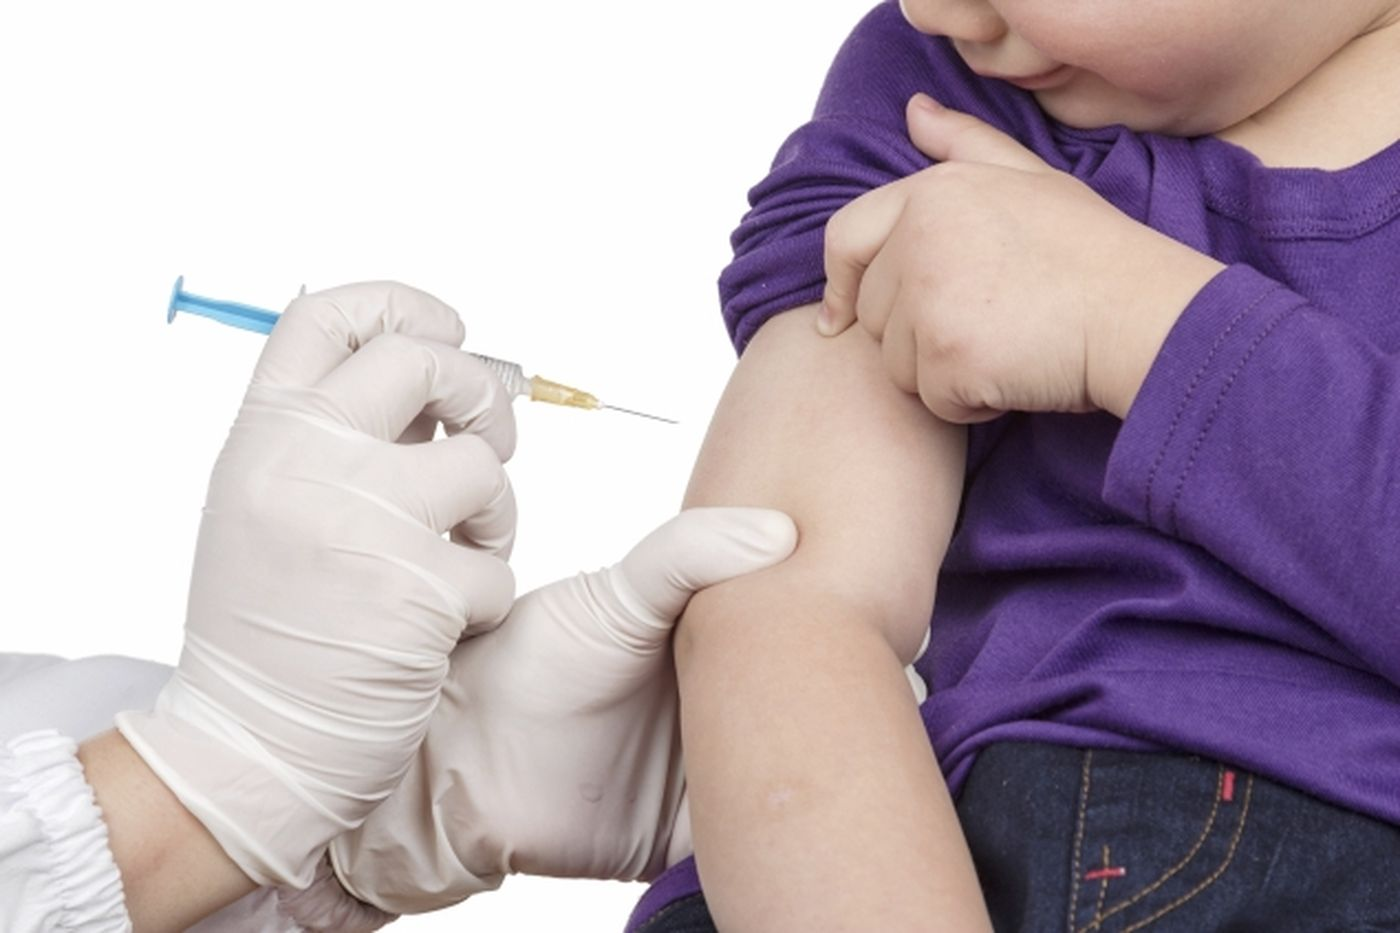 The health department reminds all New Yorkers to get vaccinated.